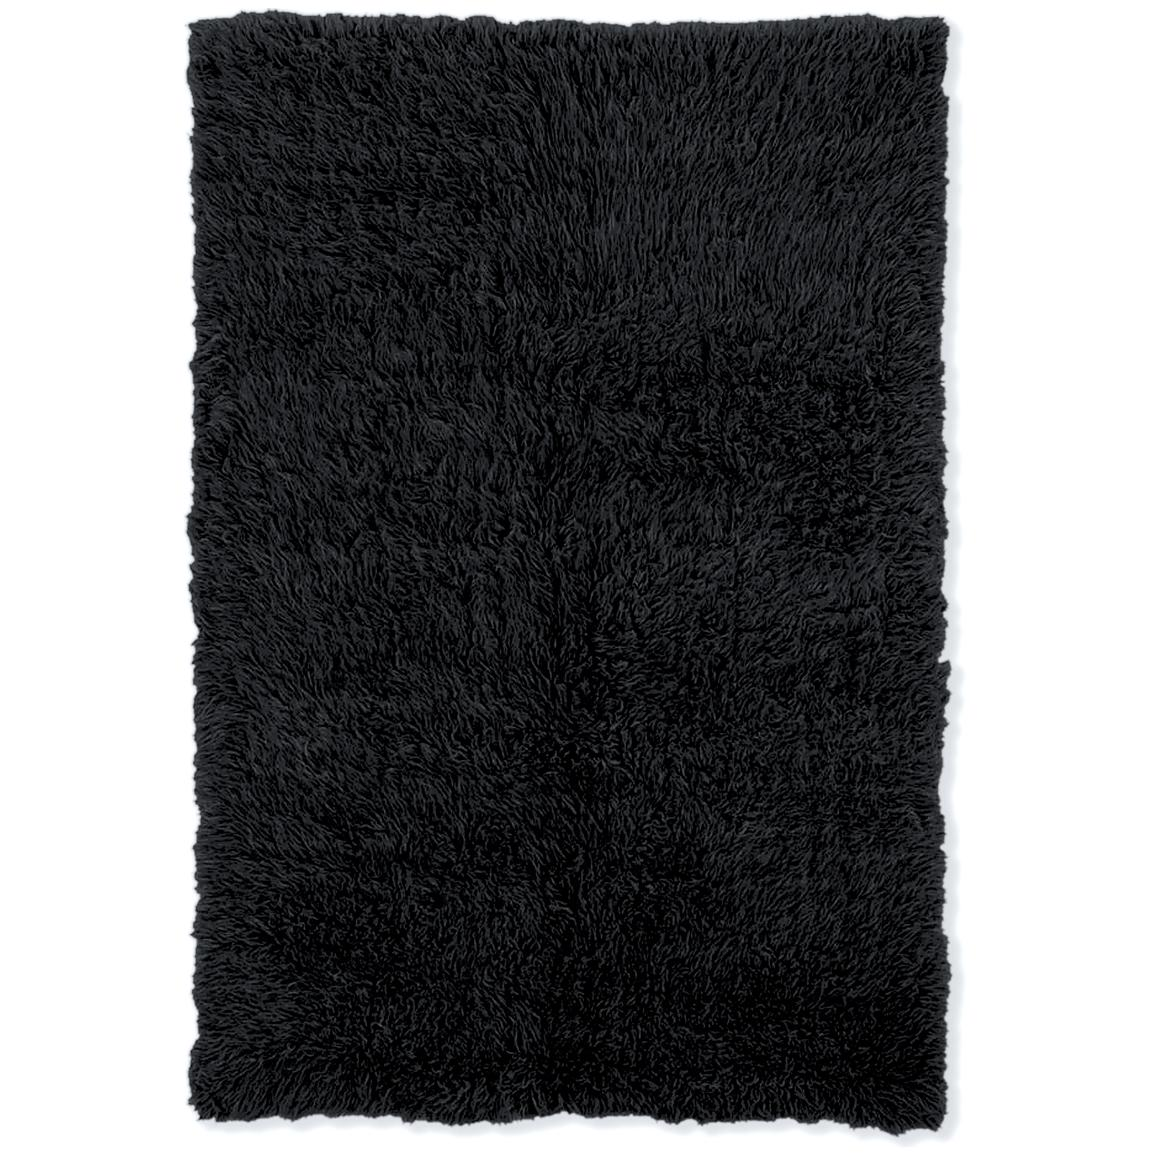 Linon Home Decor, Inc. Flokati Collection Rug, Black